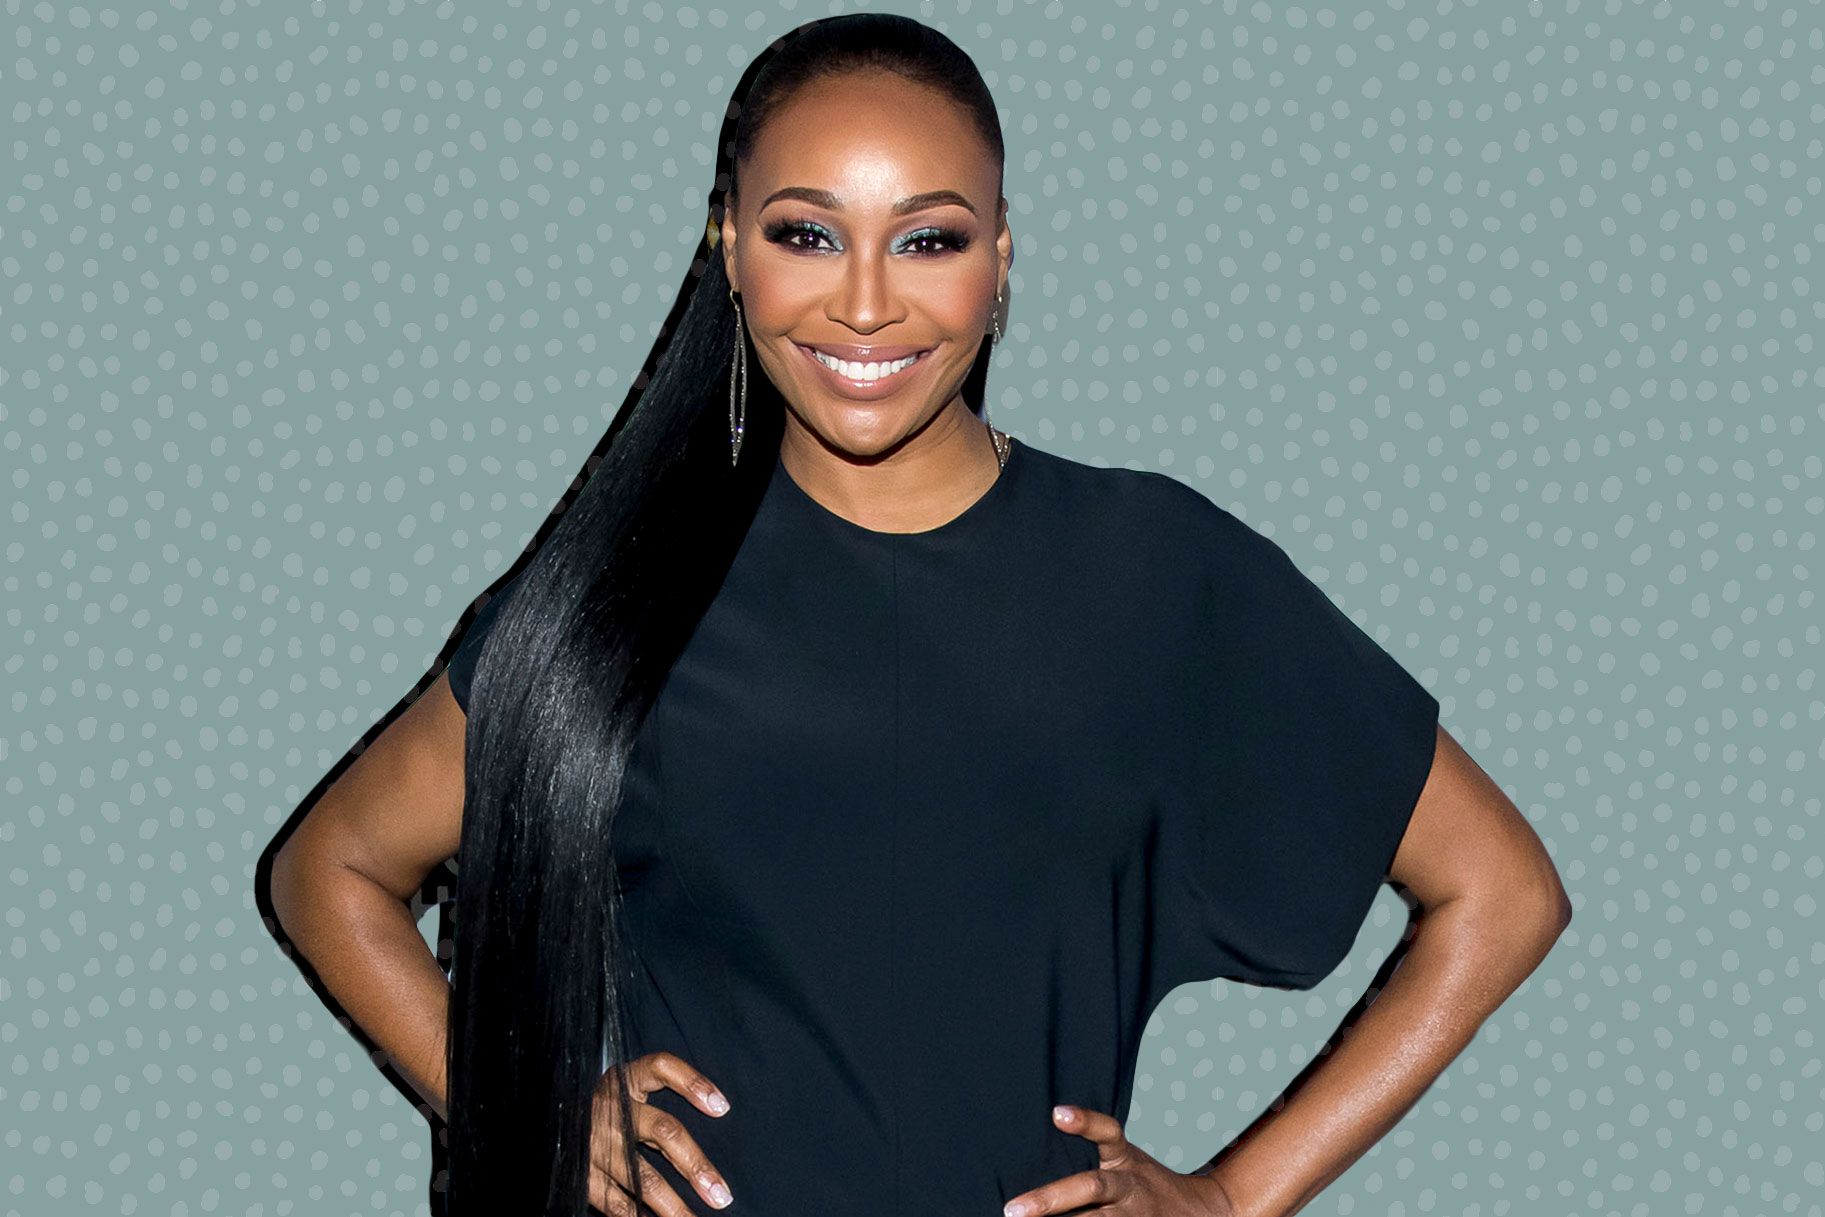 cynthia-bailey-tells-fans-that-its-not-about-getting-older-but-getting-better